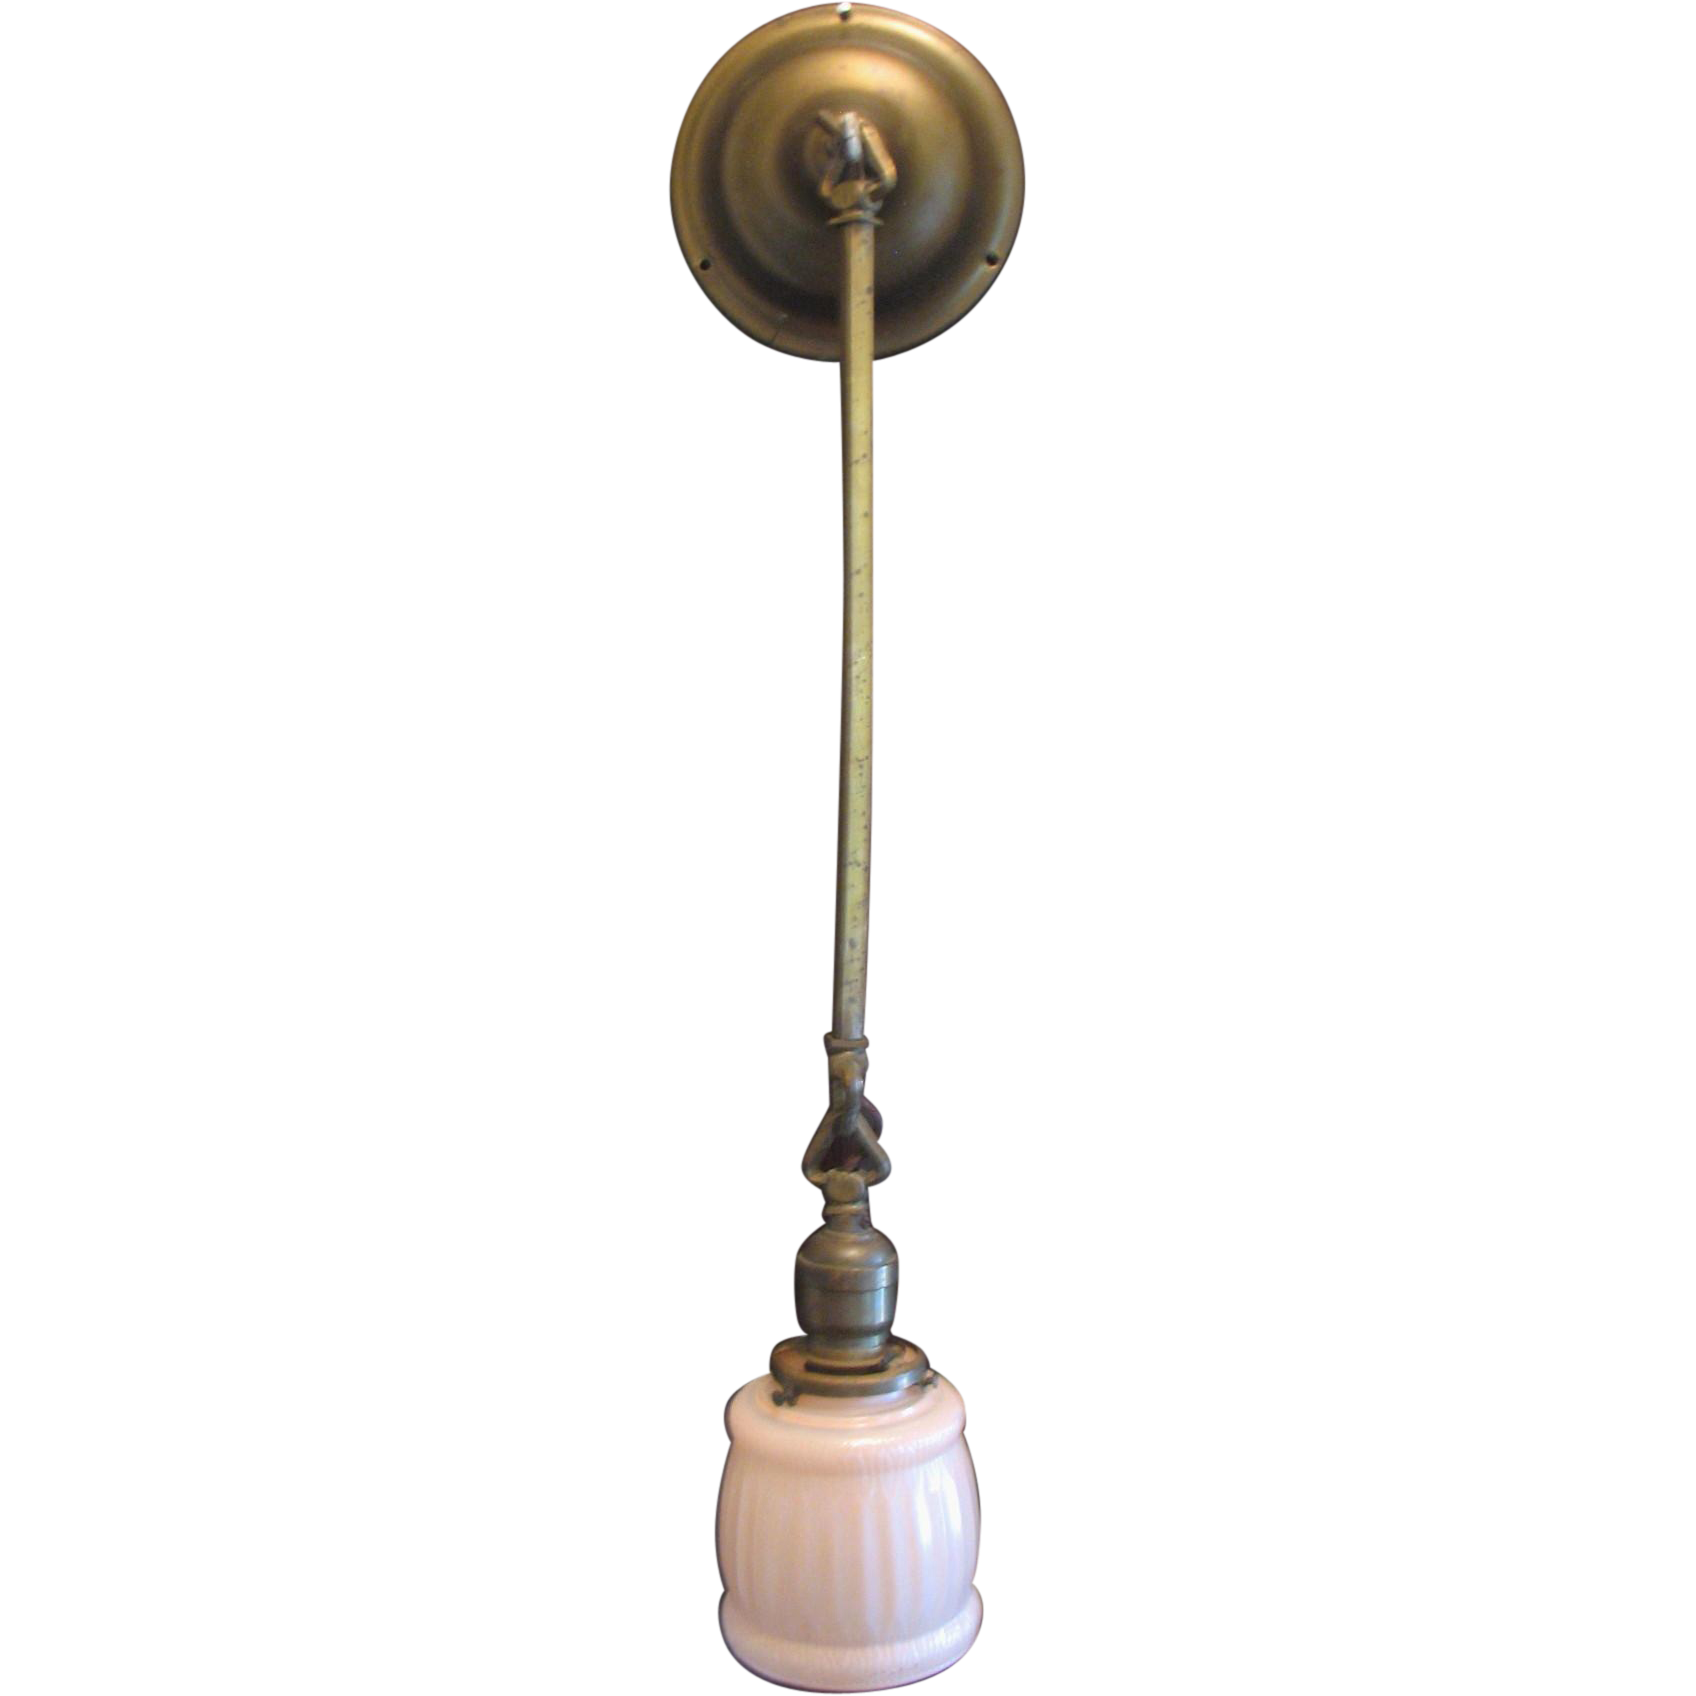 Vintage Small Ceiling Wall Drop Light Lamp Brass & Pink Glass Shade from mightyfinefinds on Ruby ...